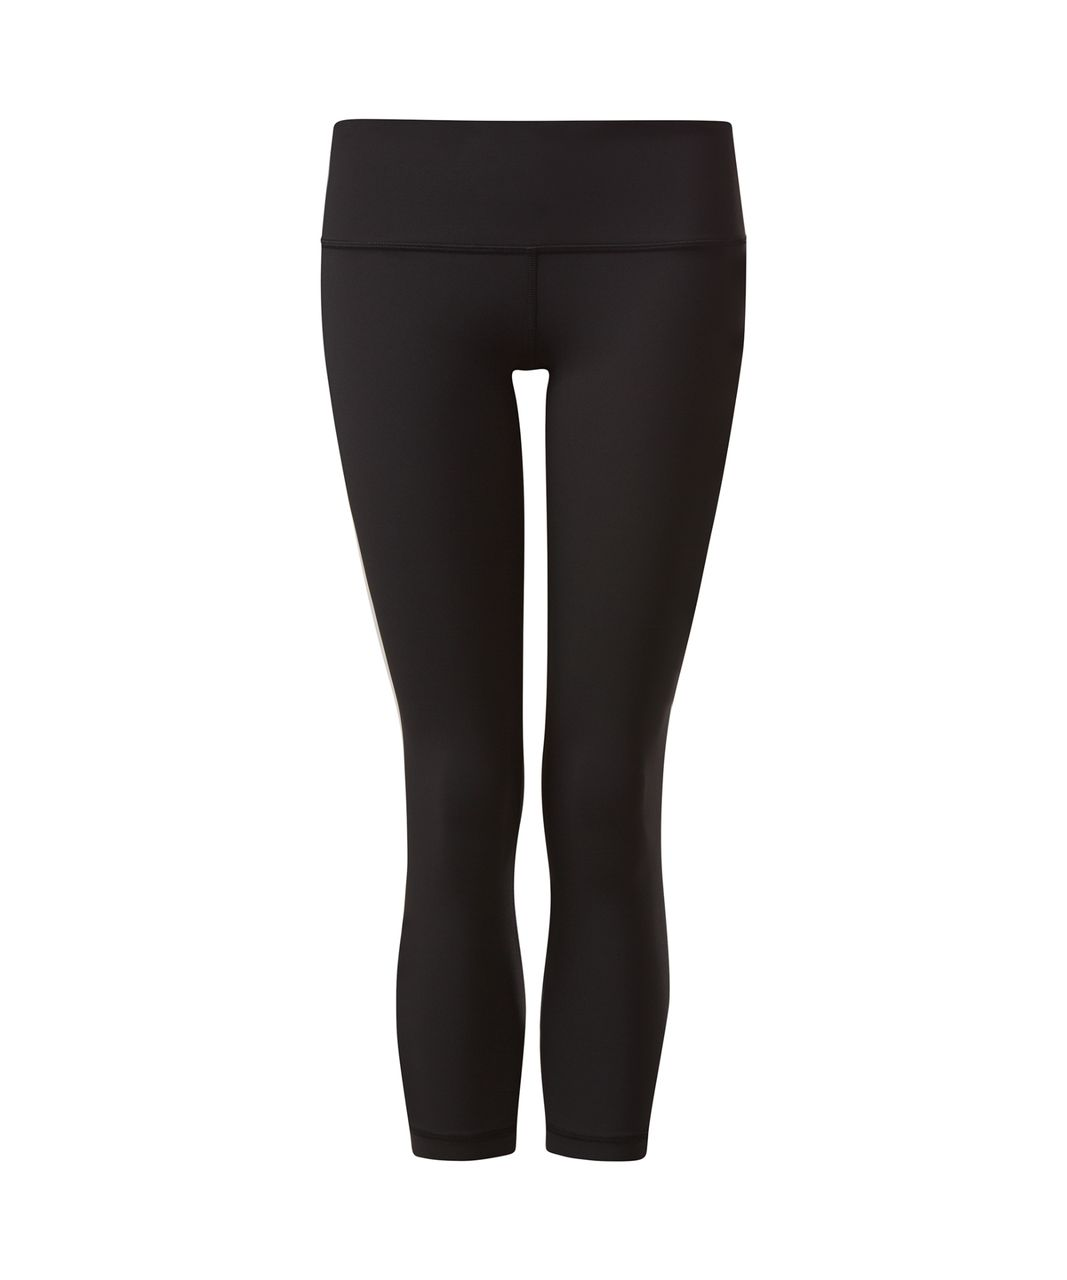 Lululemon Wunder Under Crop III - Black